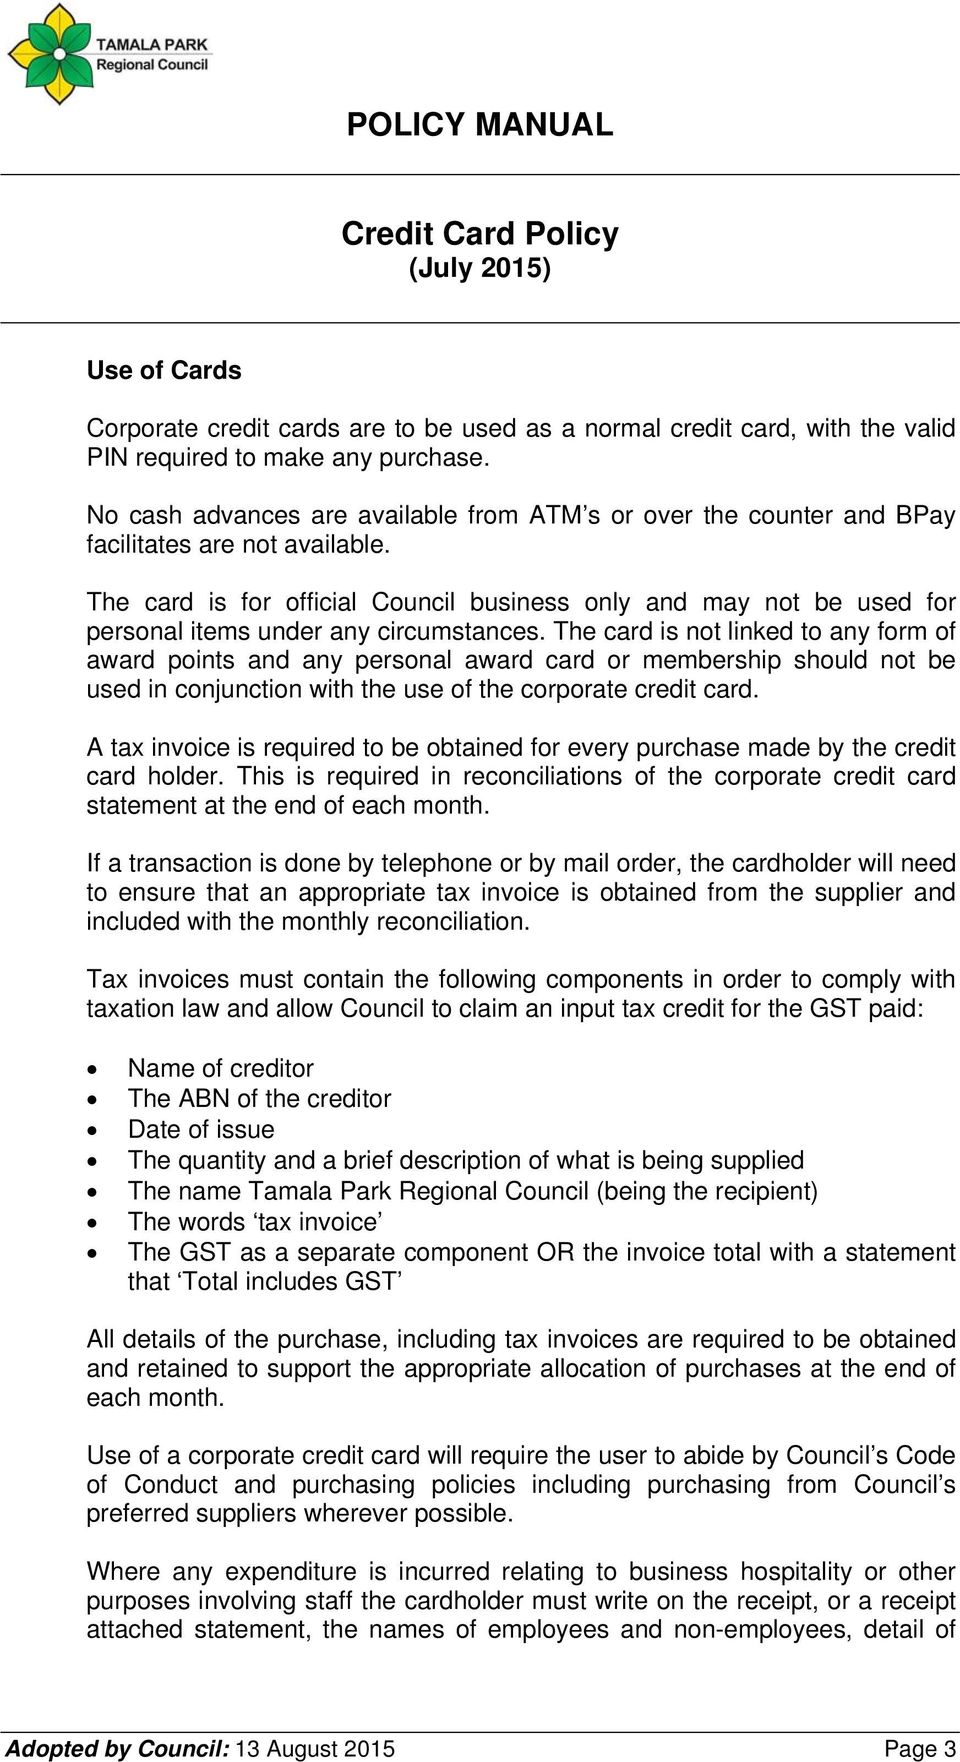 The card is for official Council business only and may not be used for personal items under any circumstances.